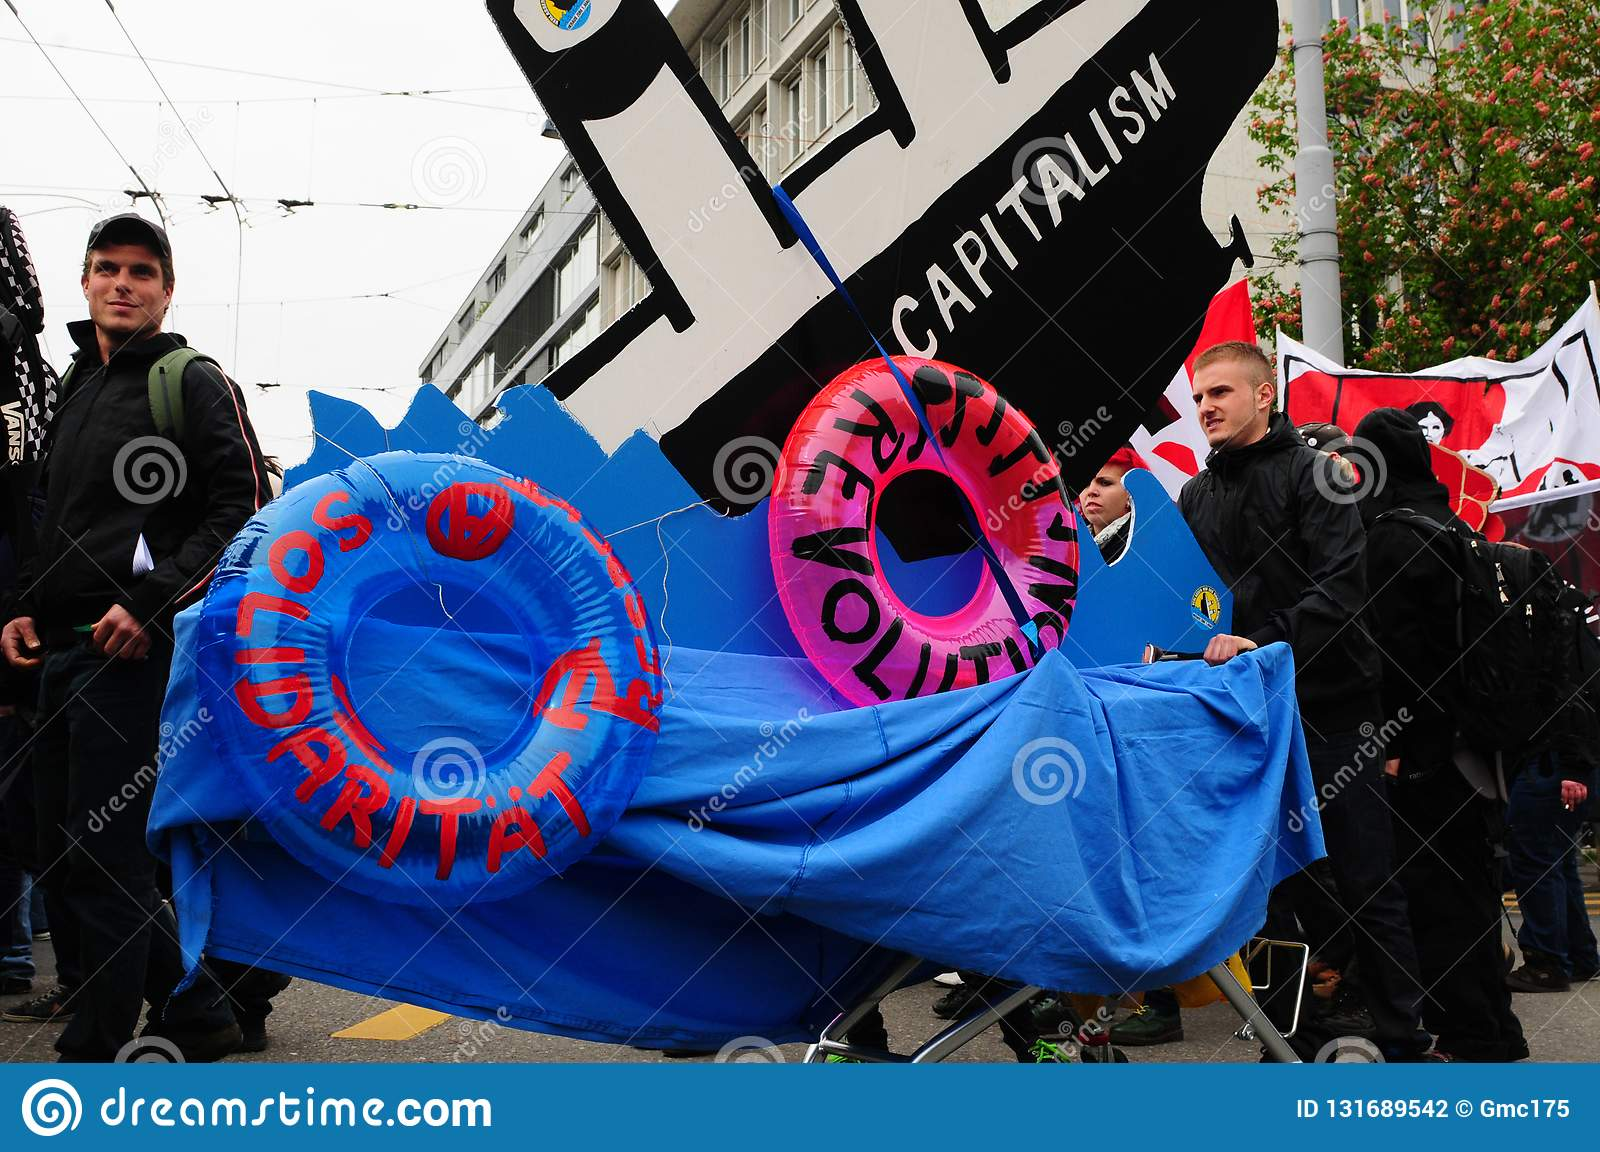 «More labour protection, higher salary, more pension» is the demand of the demonstrators in Zürich